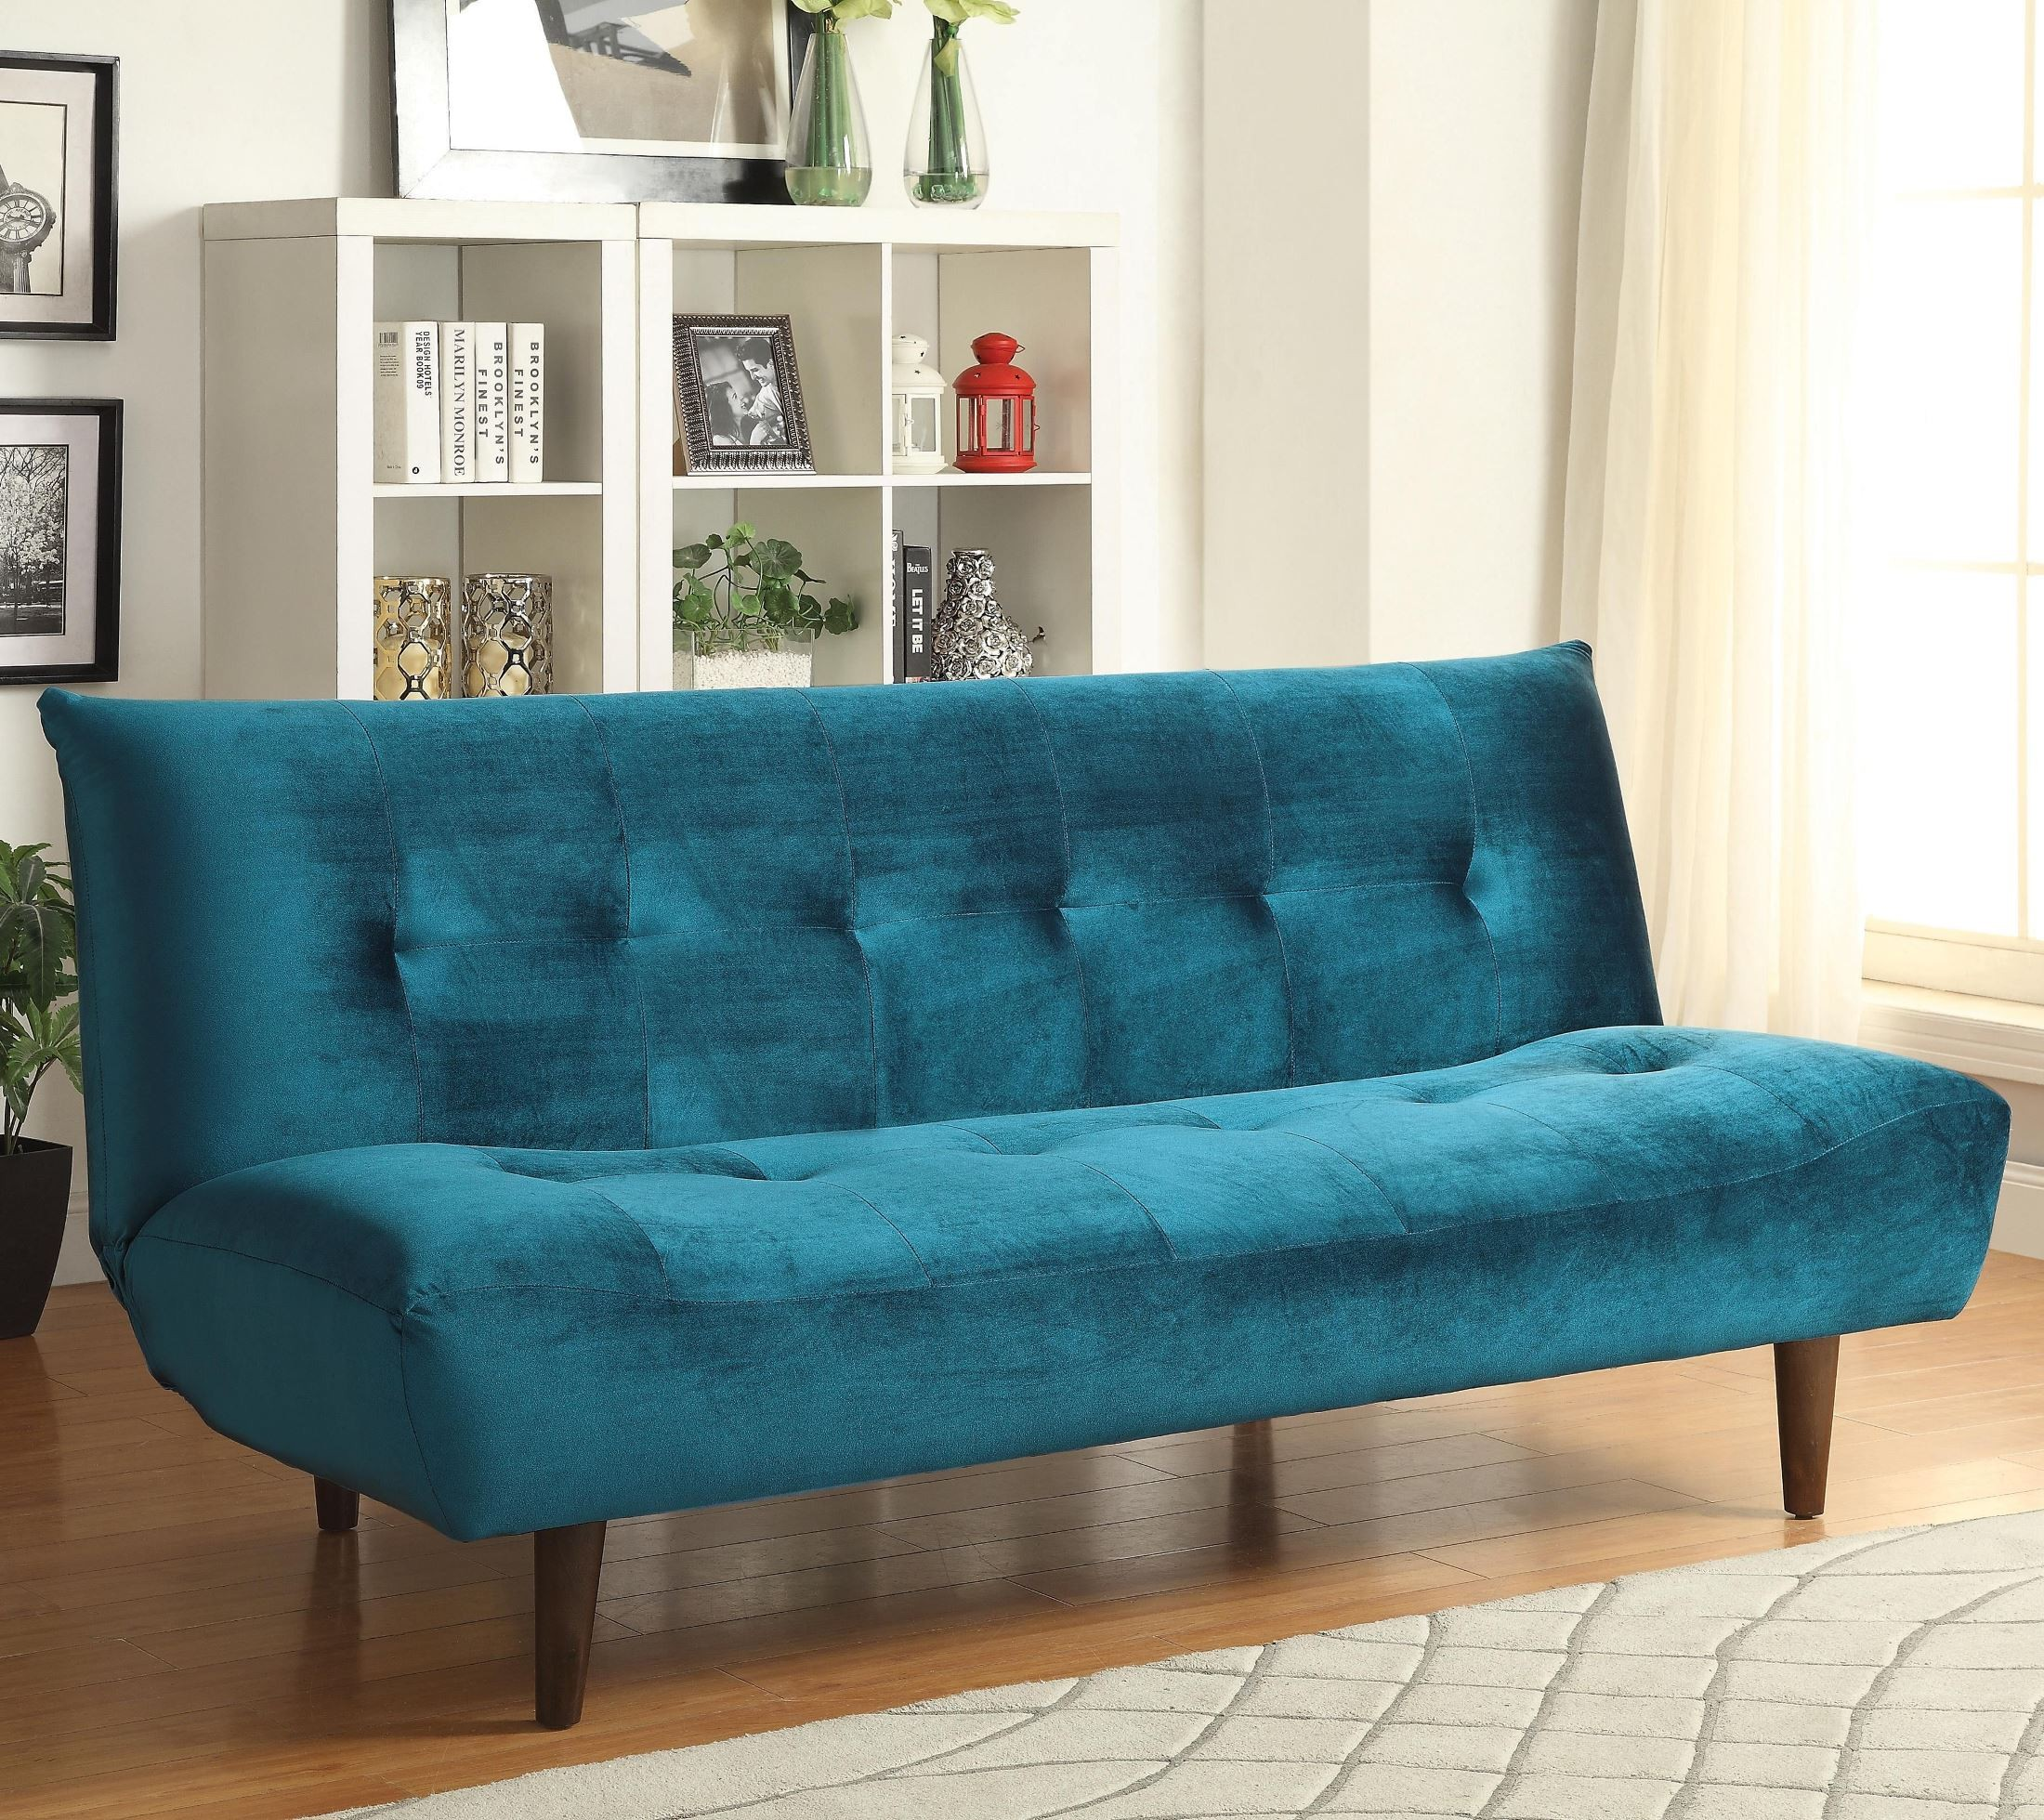 teal sofas what to do with old sofa cushions 500098 velvet tufted bed from coaster